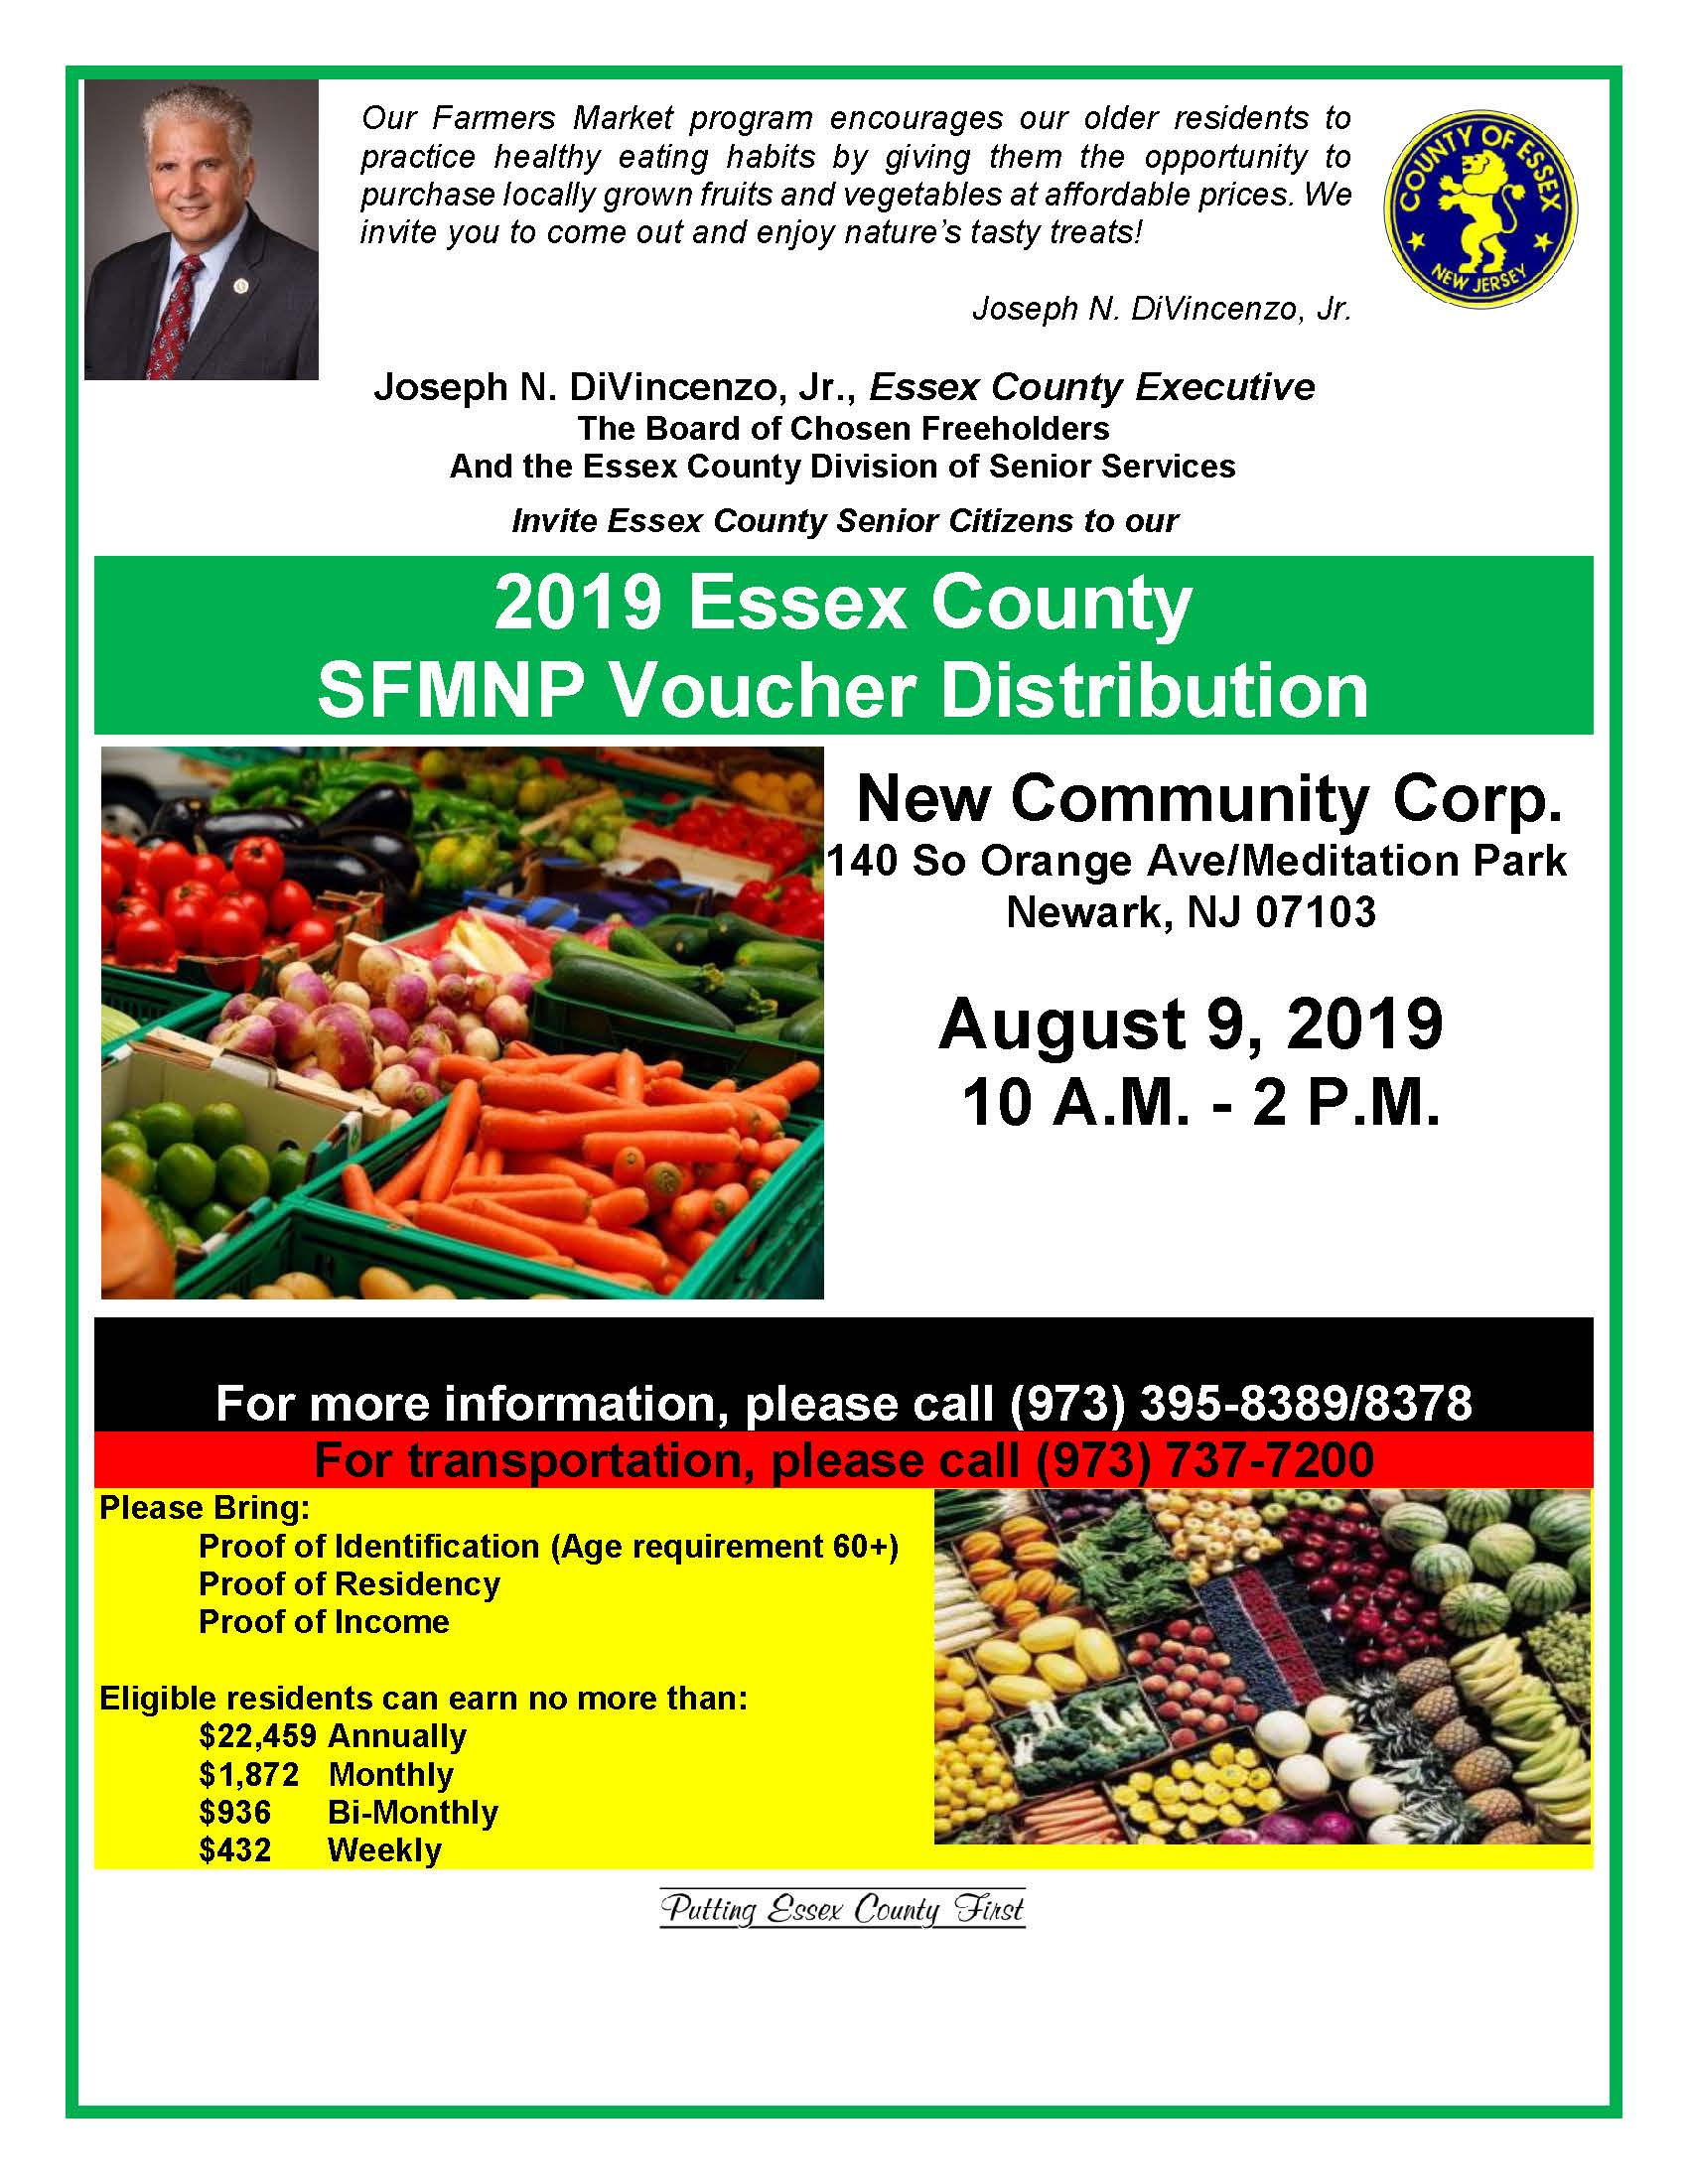 New Community to Host Farmers Market for Seniors Aug. 9